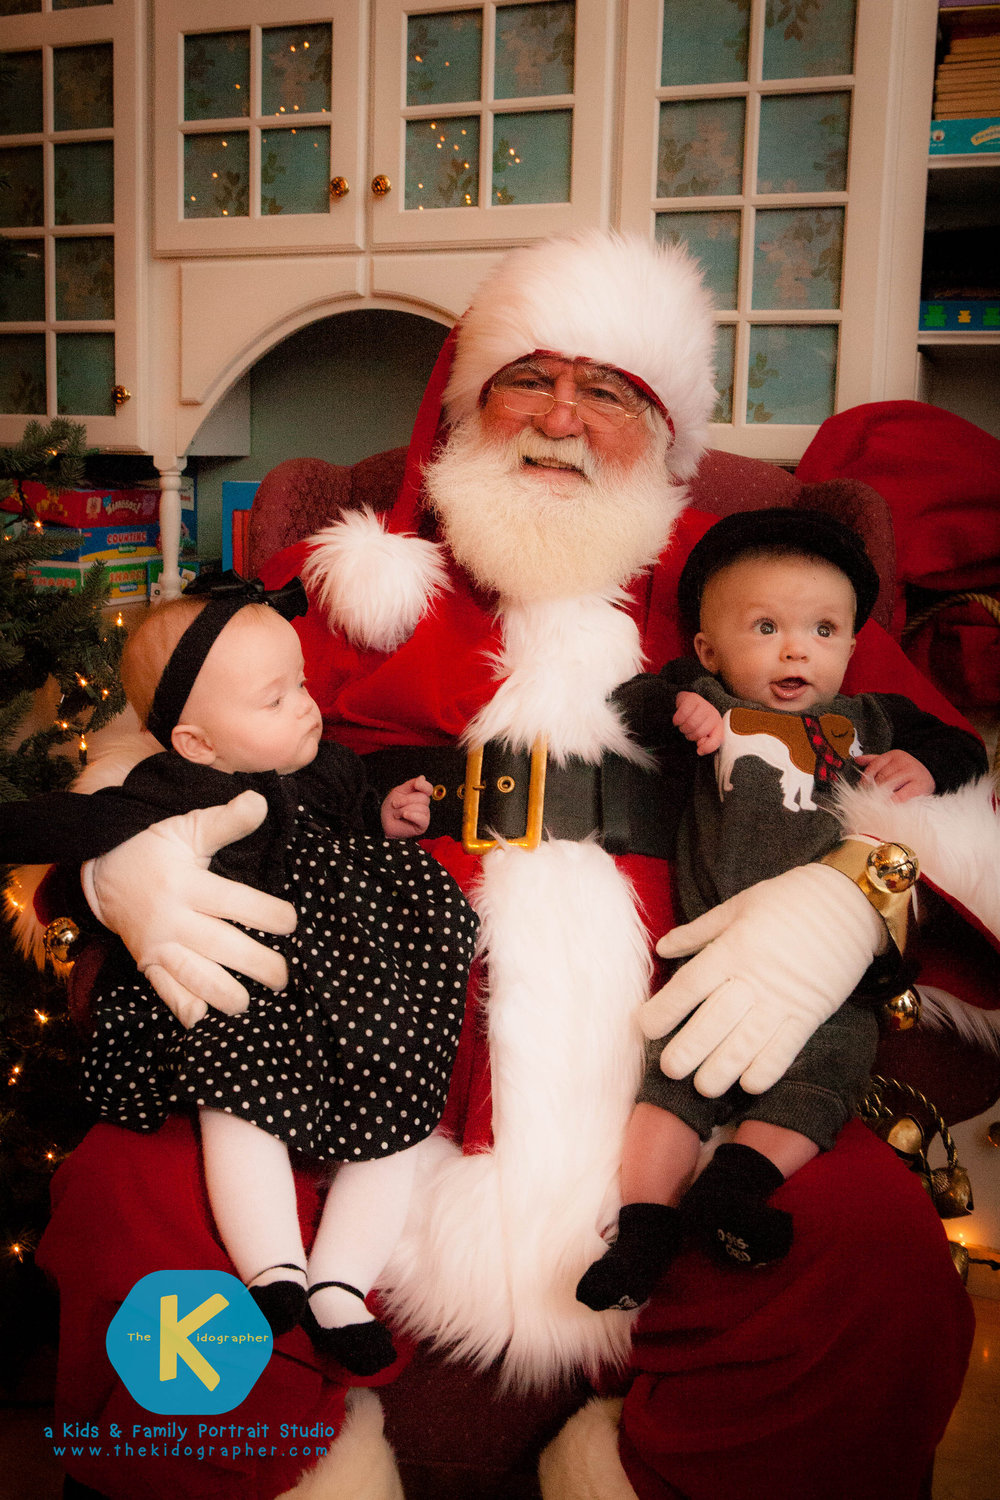 THE_KIDOGRAPHER_PHOTOS_WITH_SANTA-74.jpg